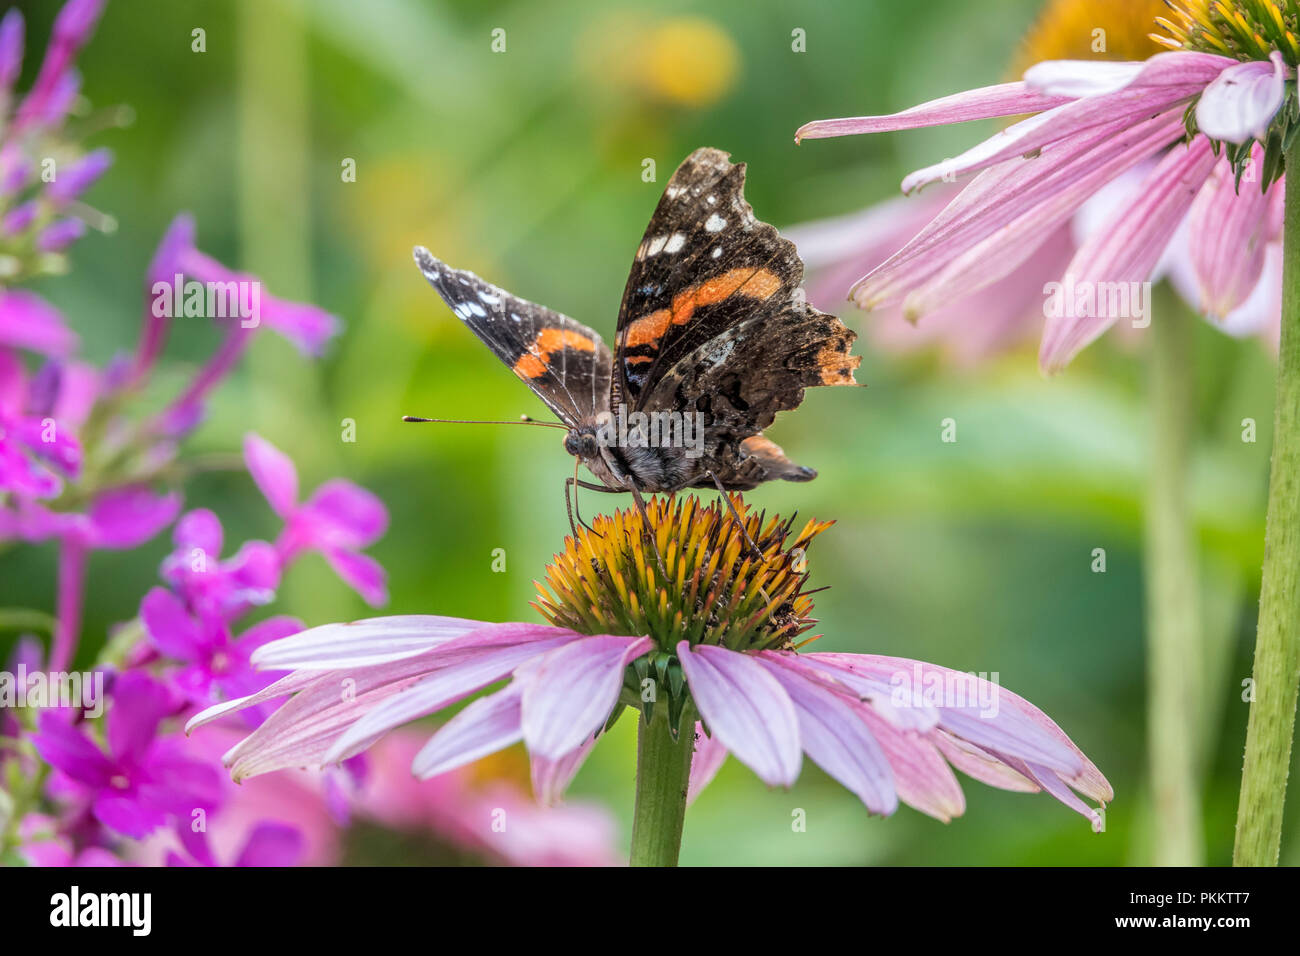 Vanessa atalanta, the red admiral or previously, the red admirable,medium-sized butterfly with black wings, orange bands, and white spots. - Stock Image